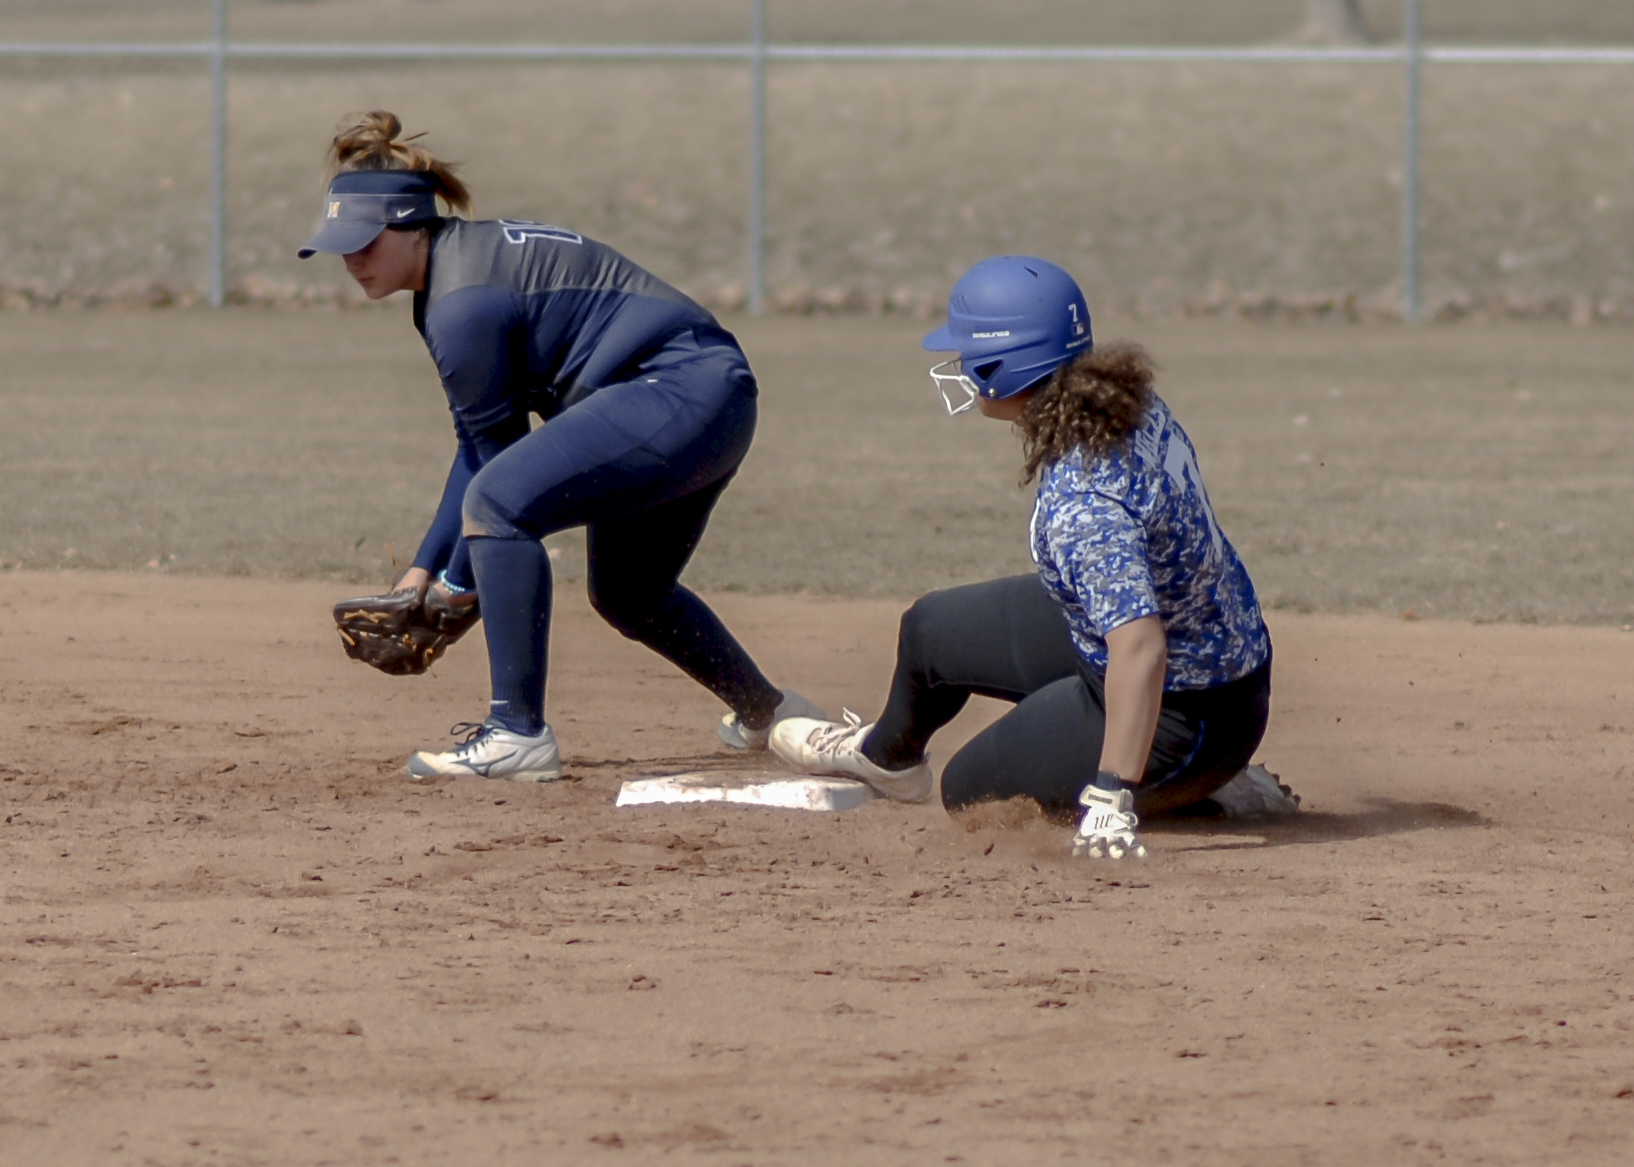 DMACC softball team sweeps doubleheader from SWCC